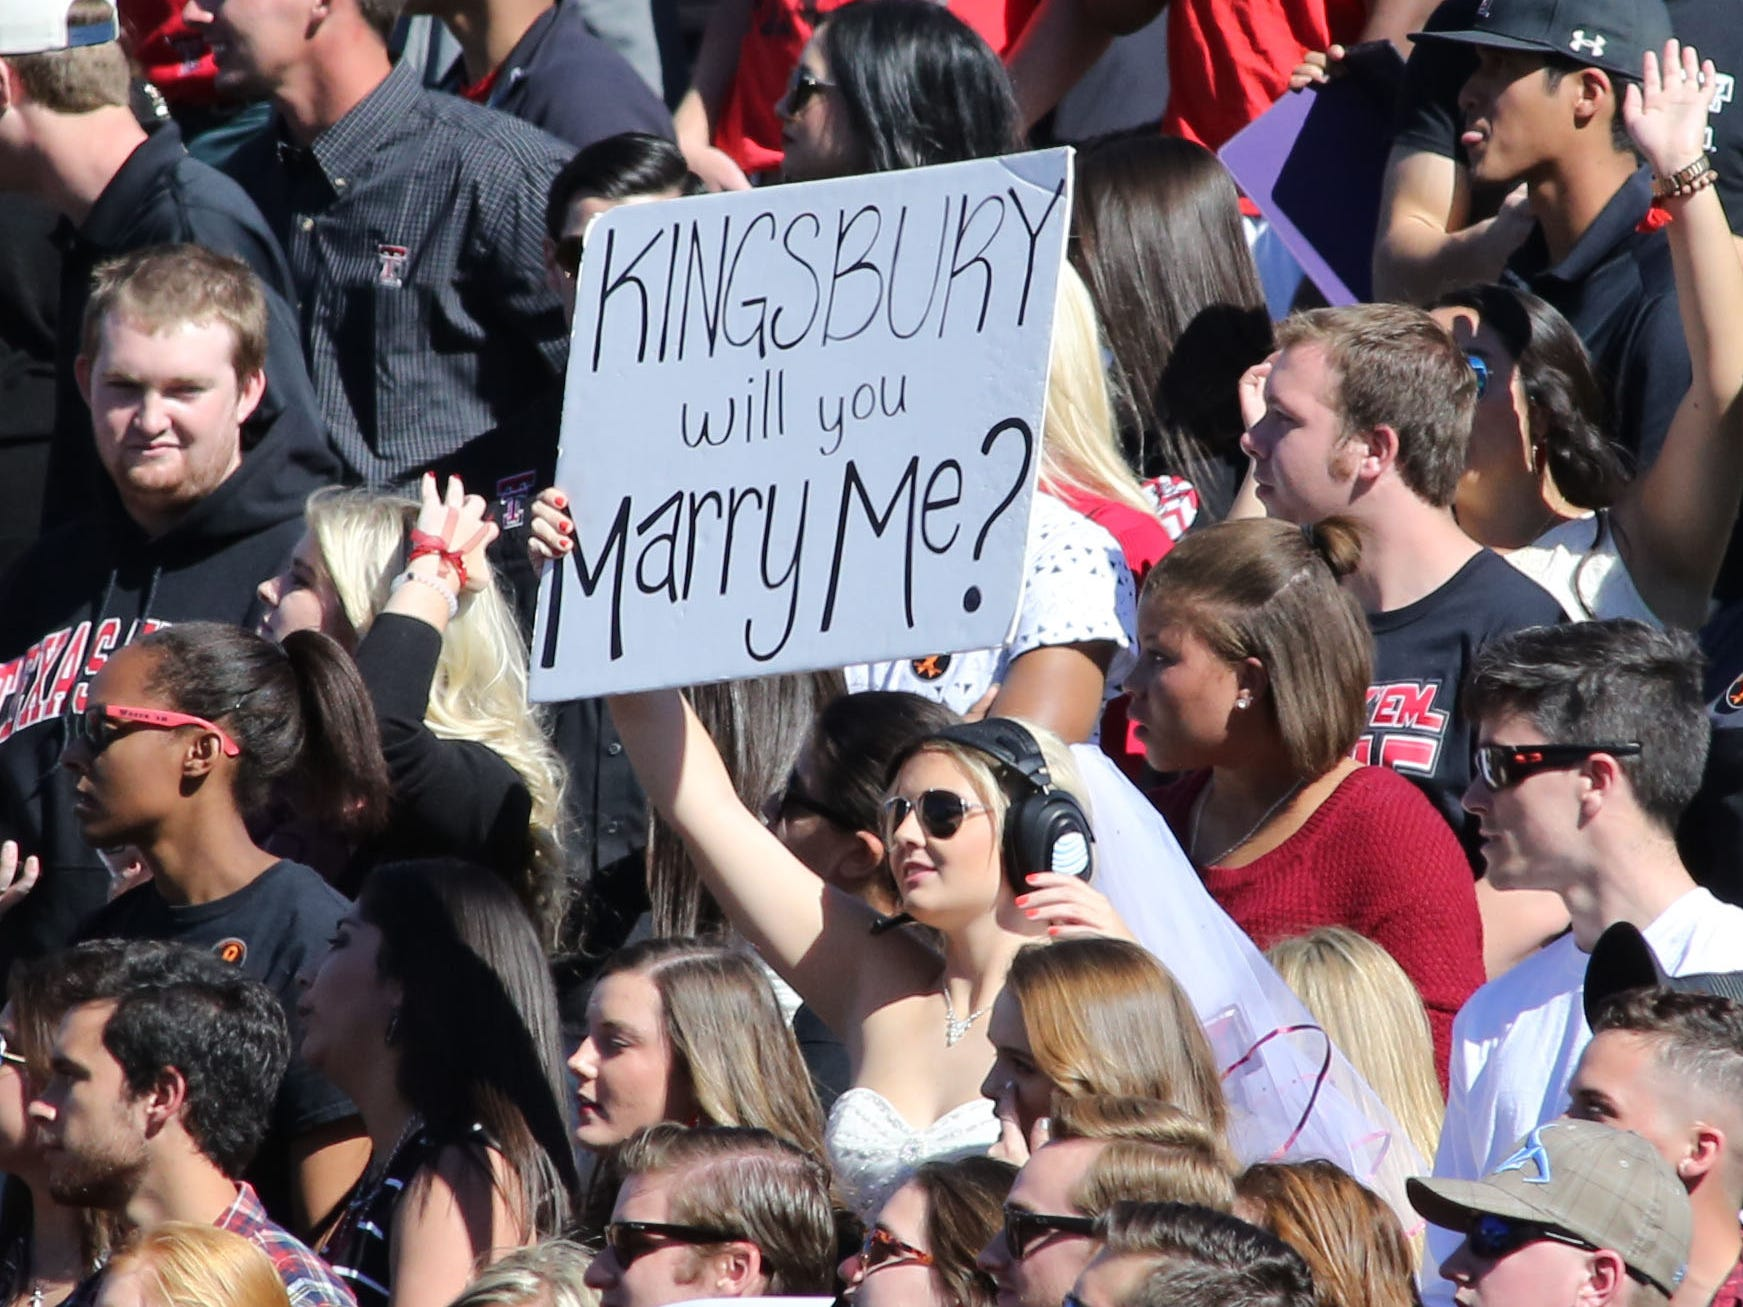 A Texas Tech fan in a wedding dress has a message for the Red Raiders head coach Kliff Kinsgbury on Oct. 31, 2015.